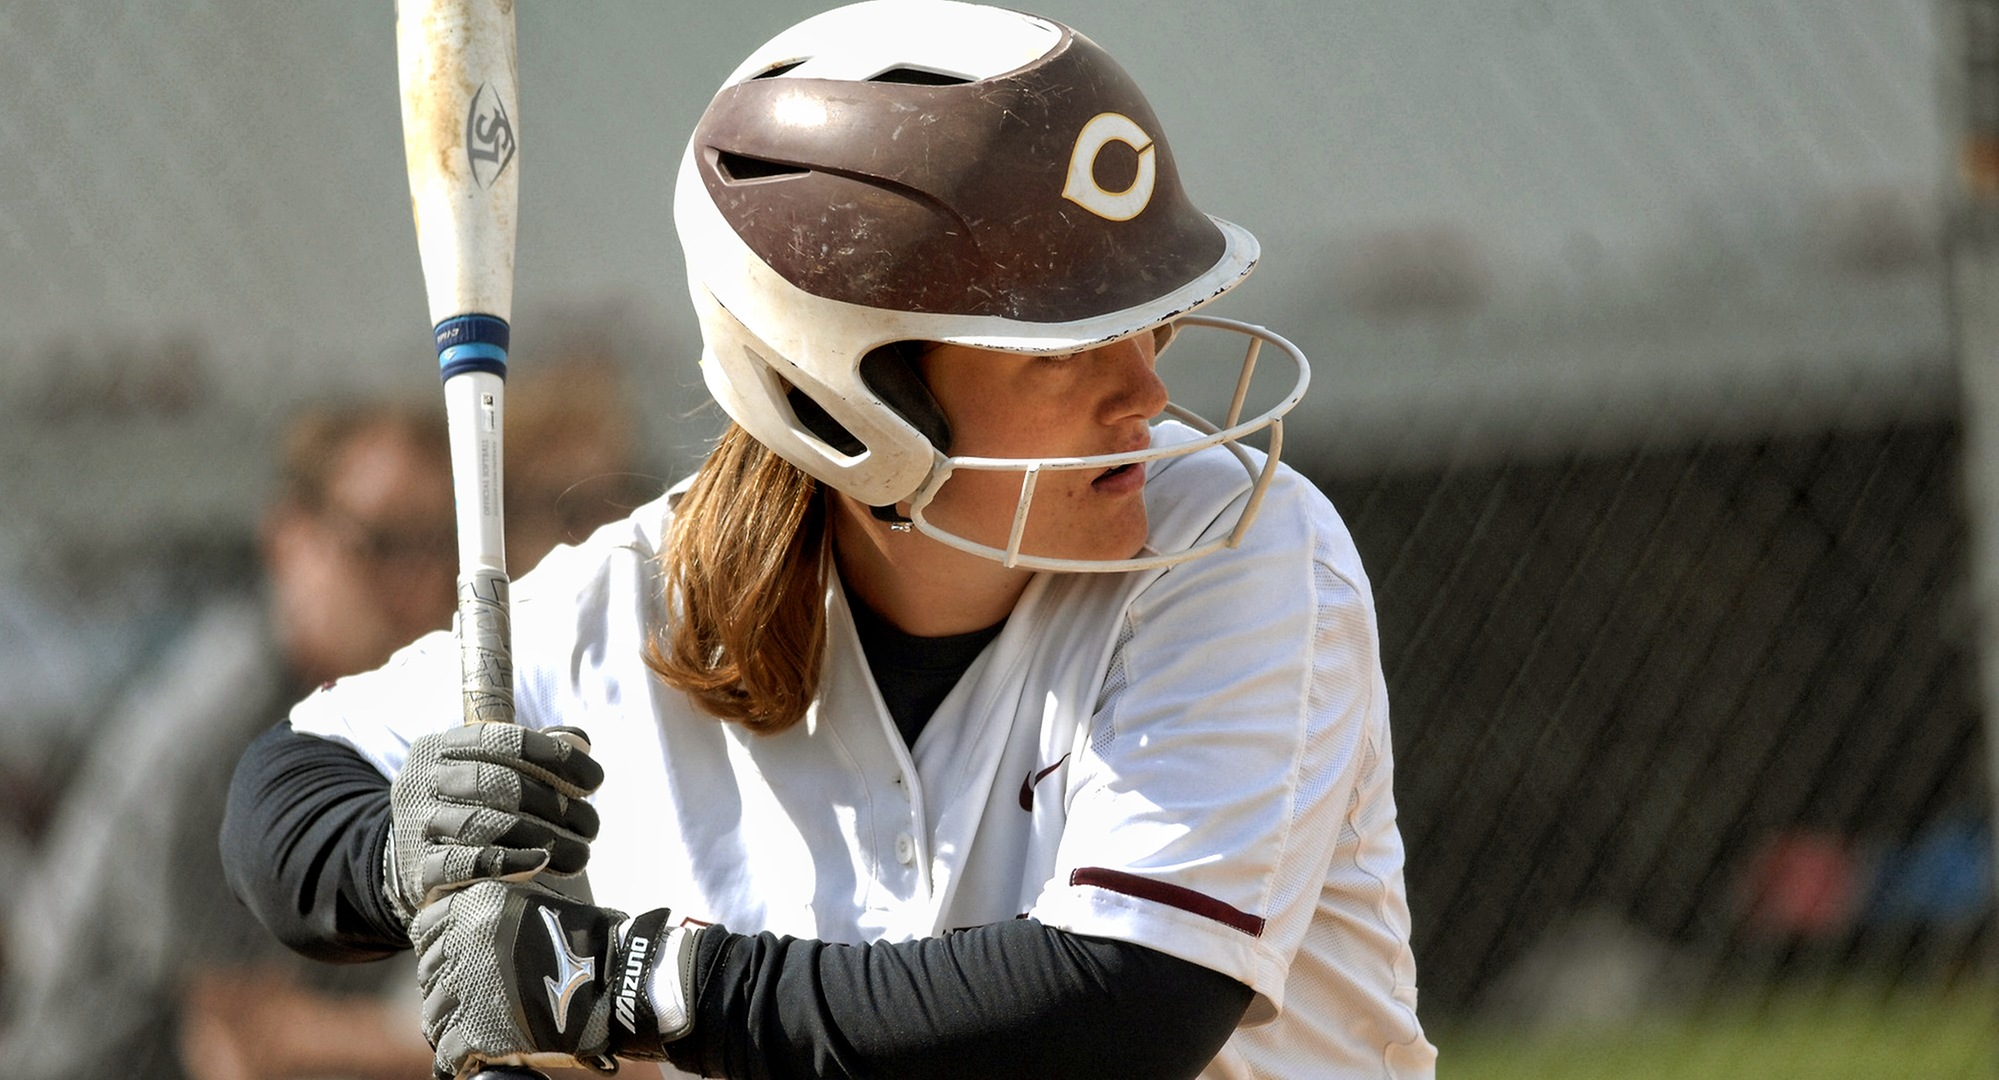 Junior Taylor Erholtz hit her second career home run in the Cobbers' game with Eastern Nazarene.